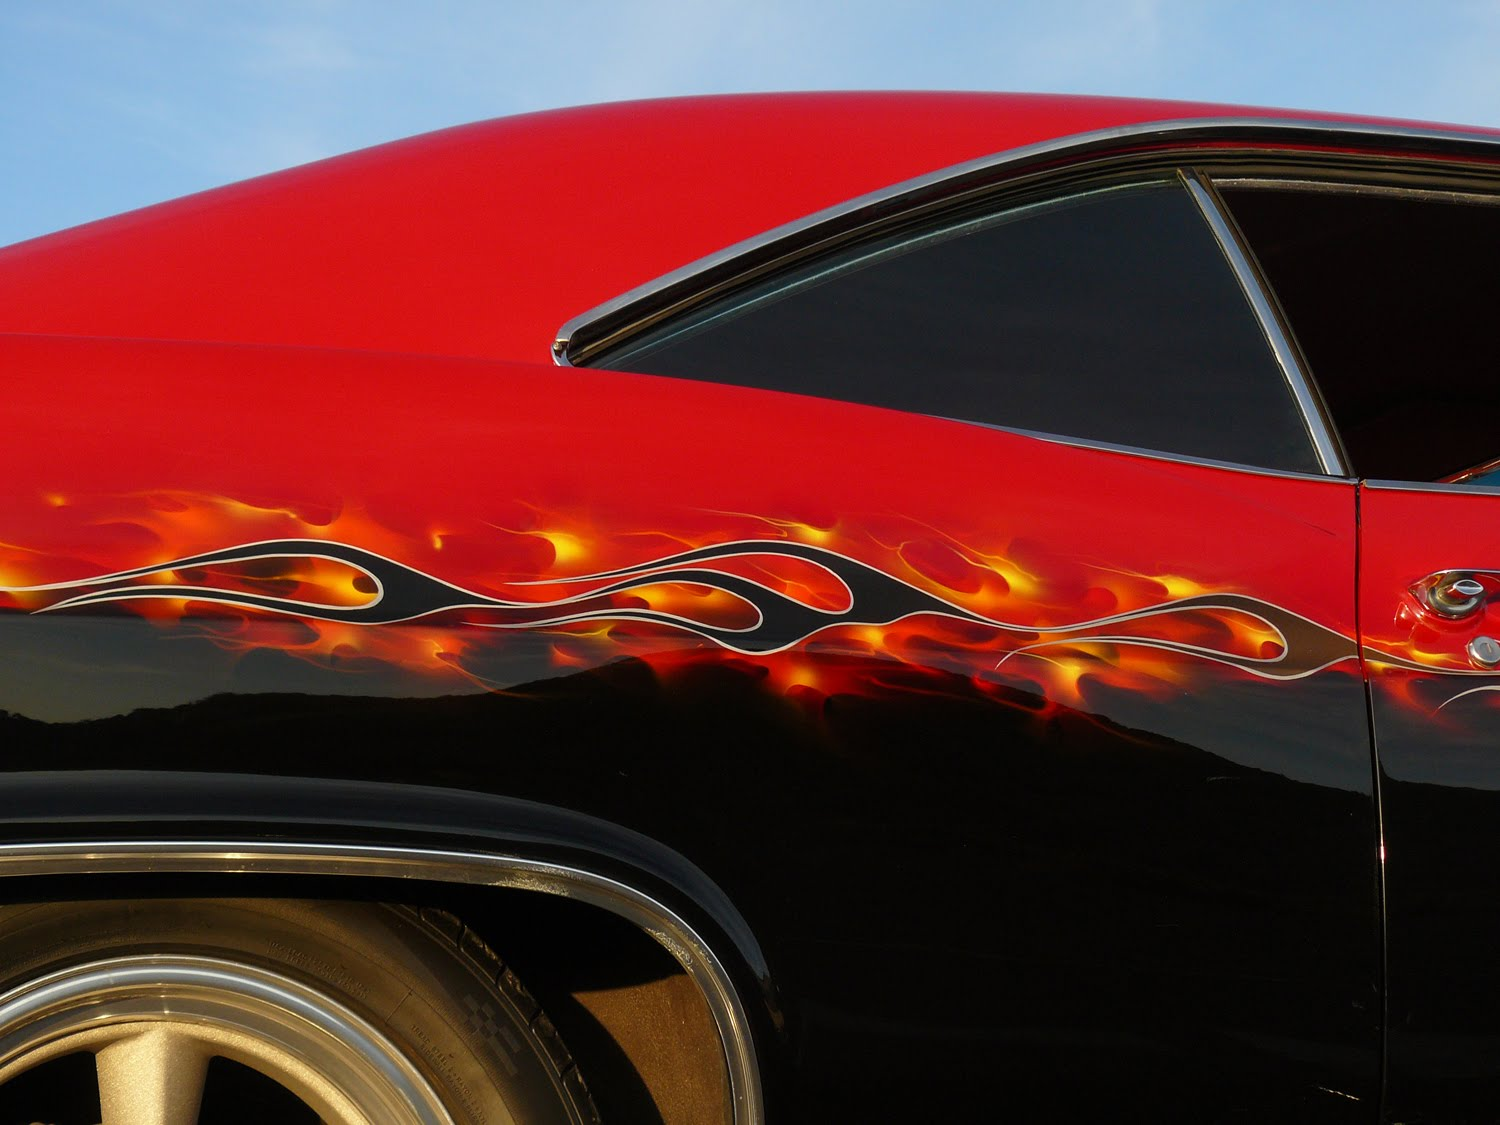 Flame Paint Jobs On Cars